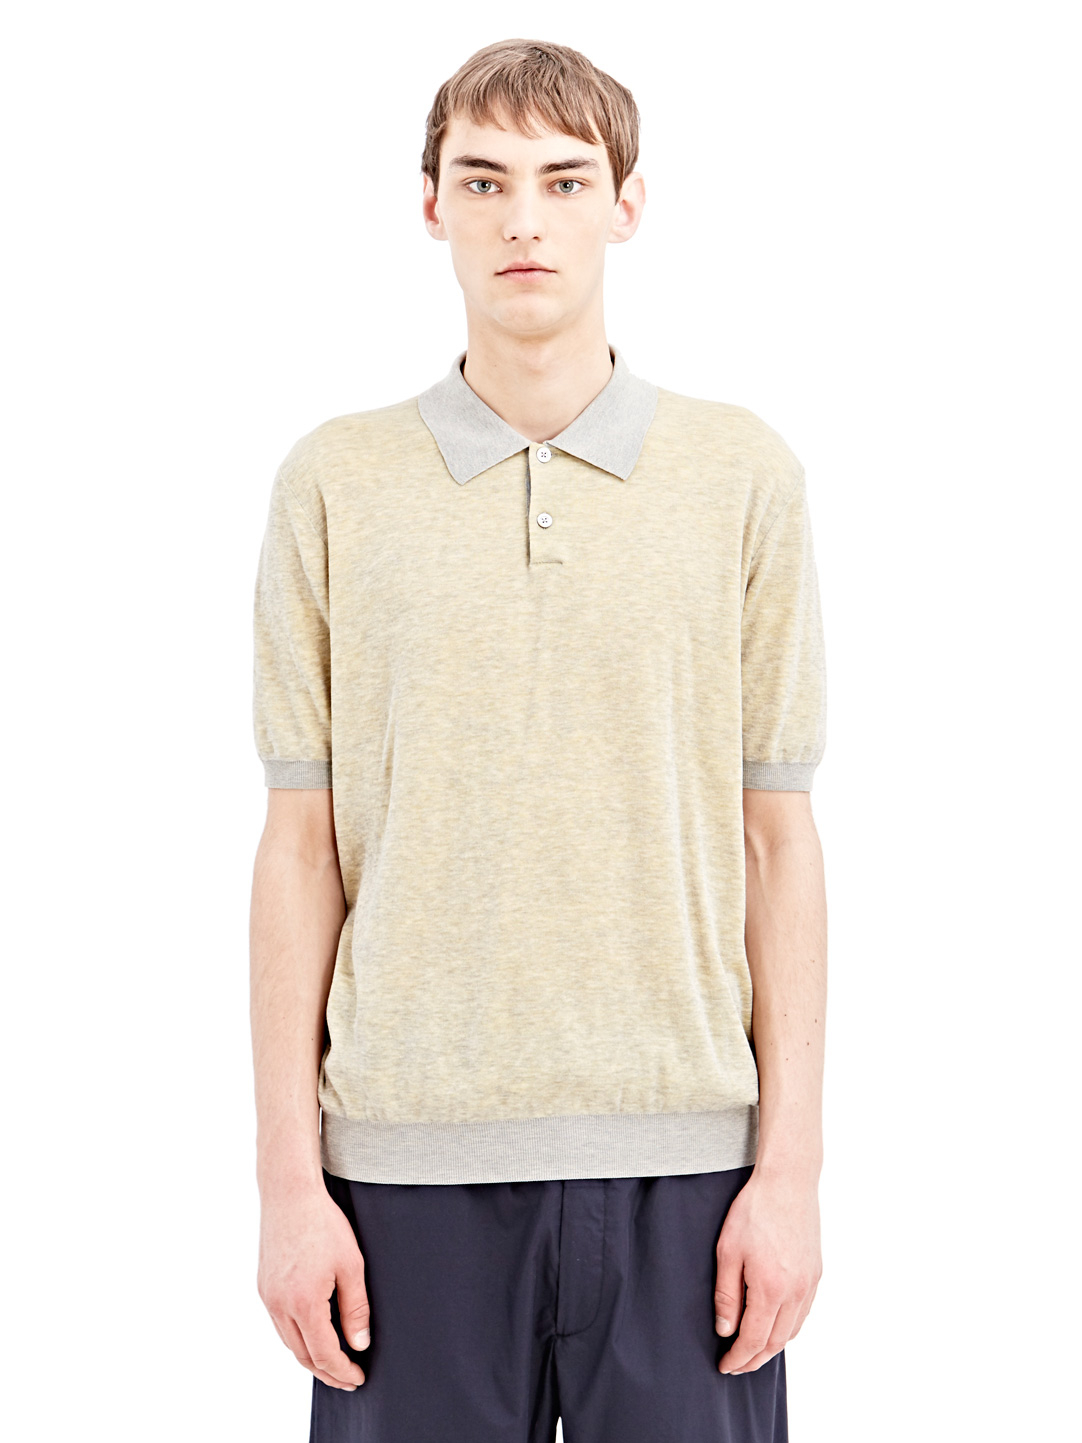 Lyst jil sander mens polo shirt in yellow for men for Jil sander mens shirt